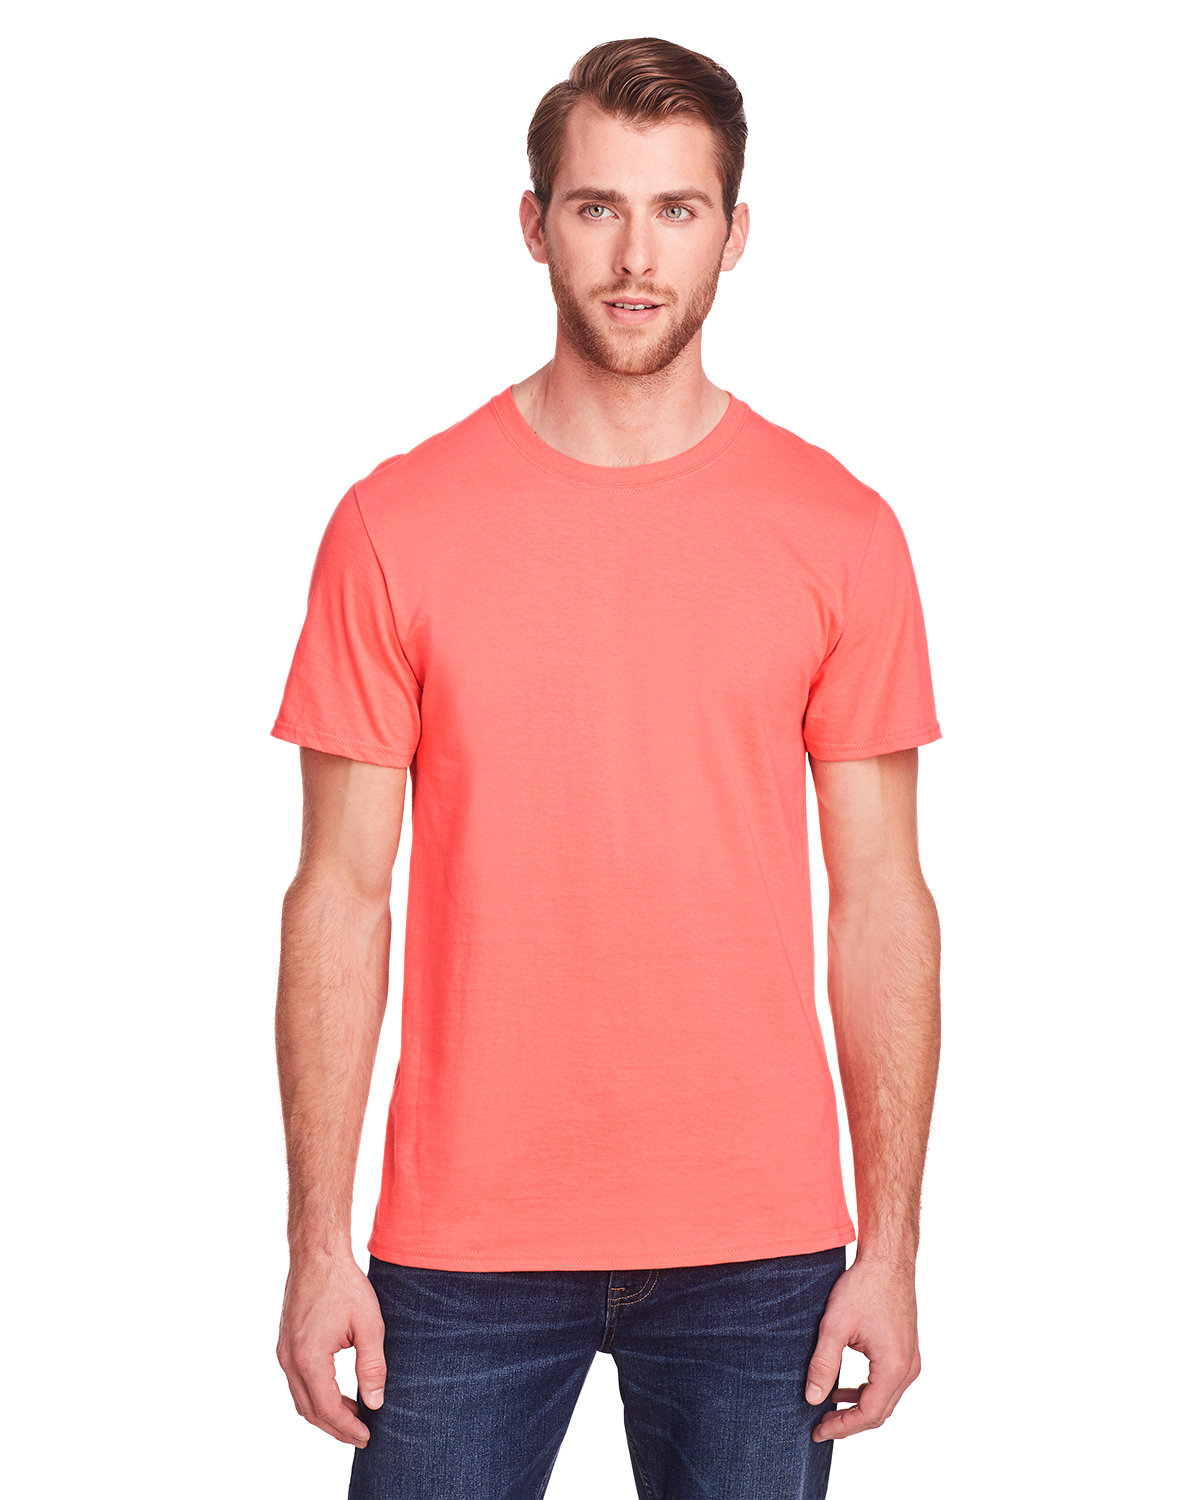 Fruit of the Loom Adult ICONIC™ T-Shirt SUNSET CORAL